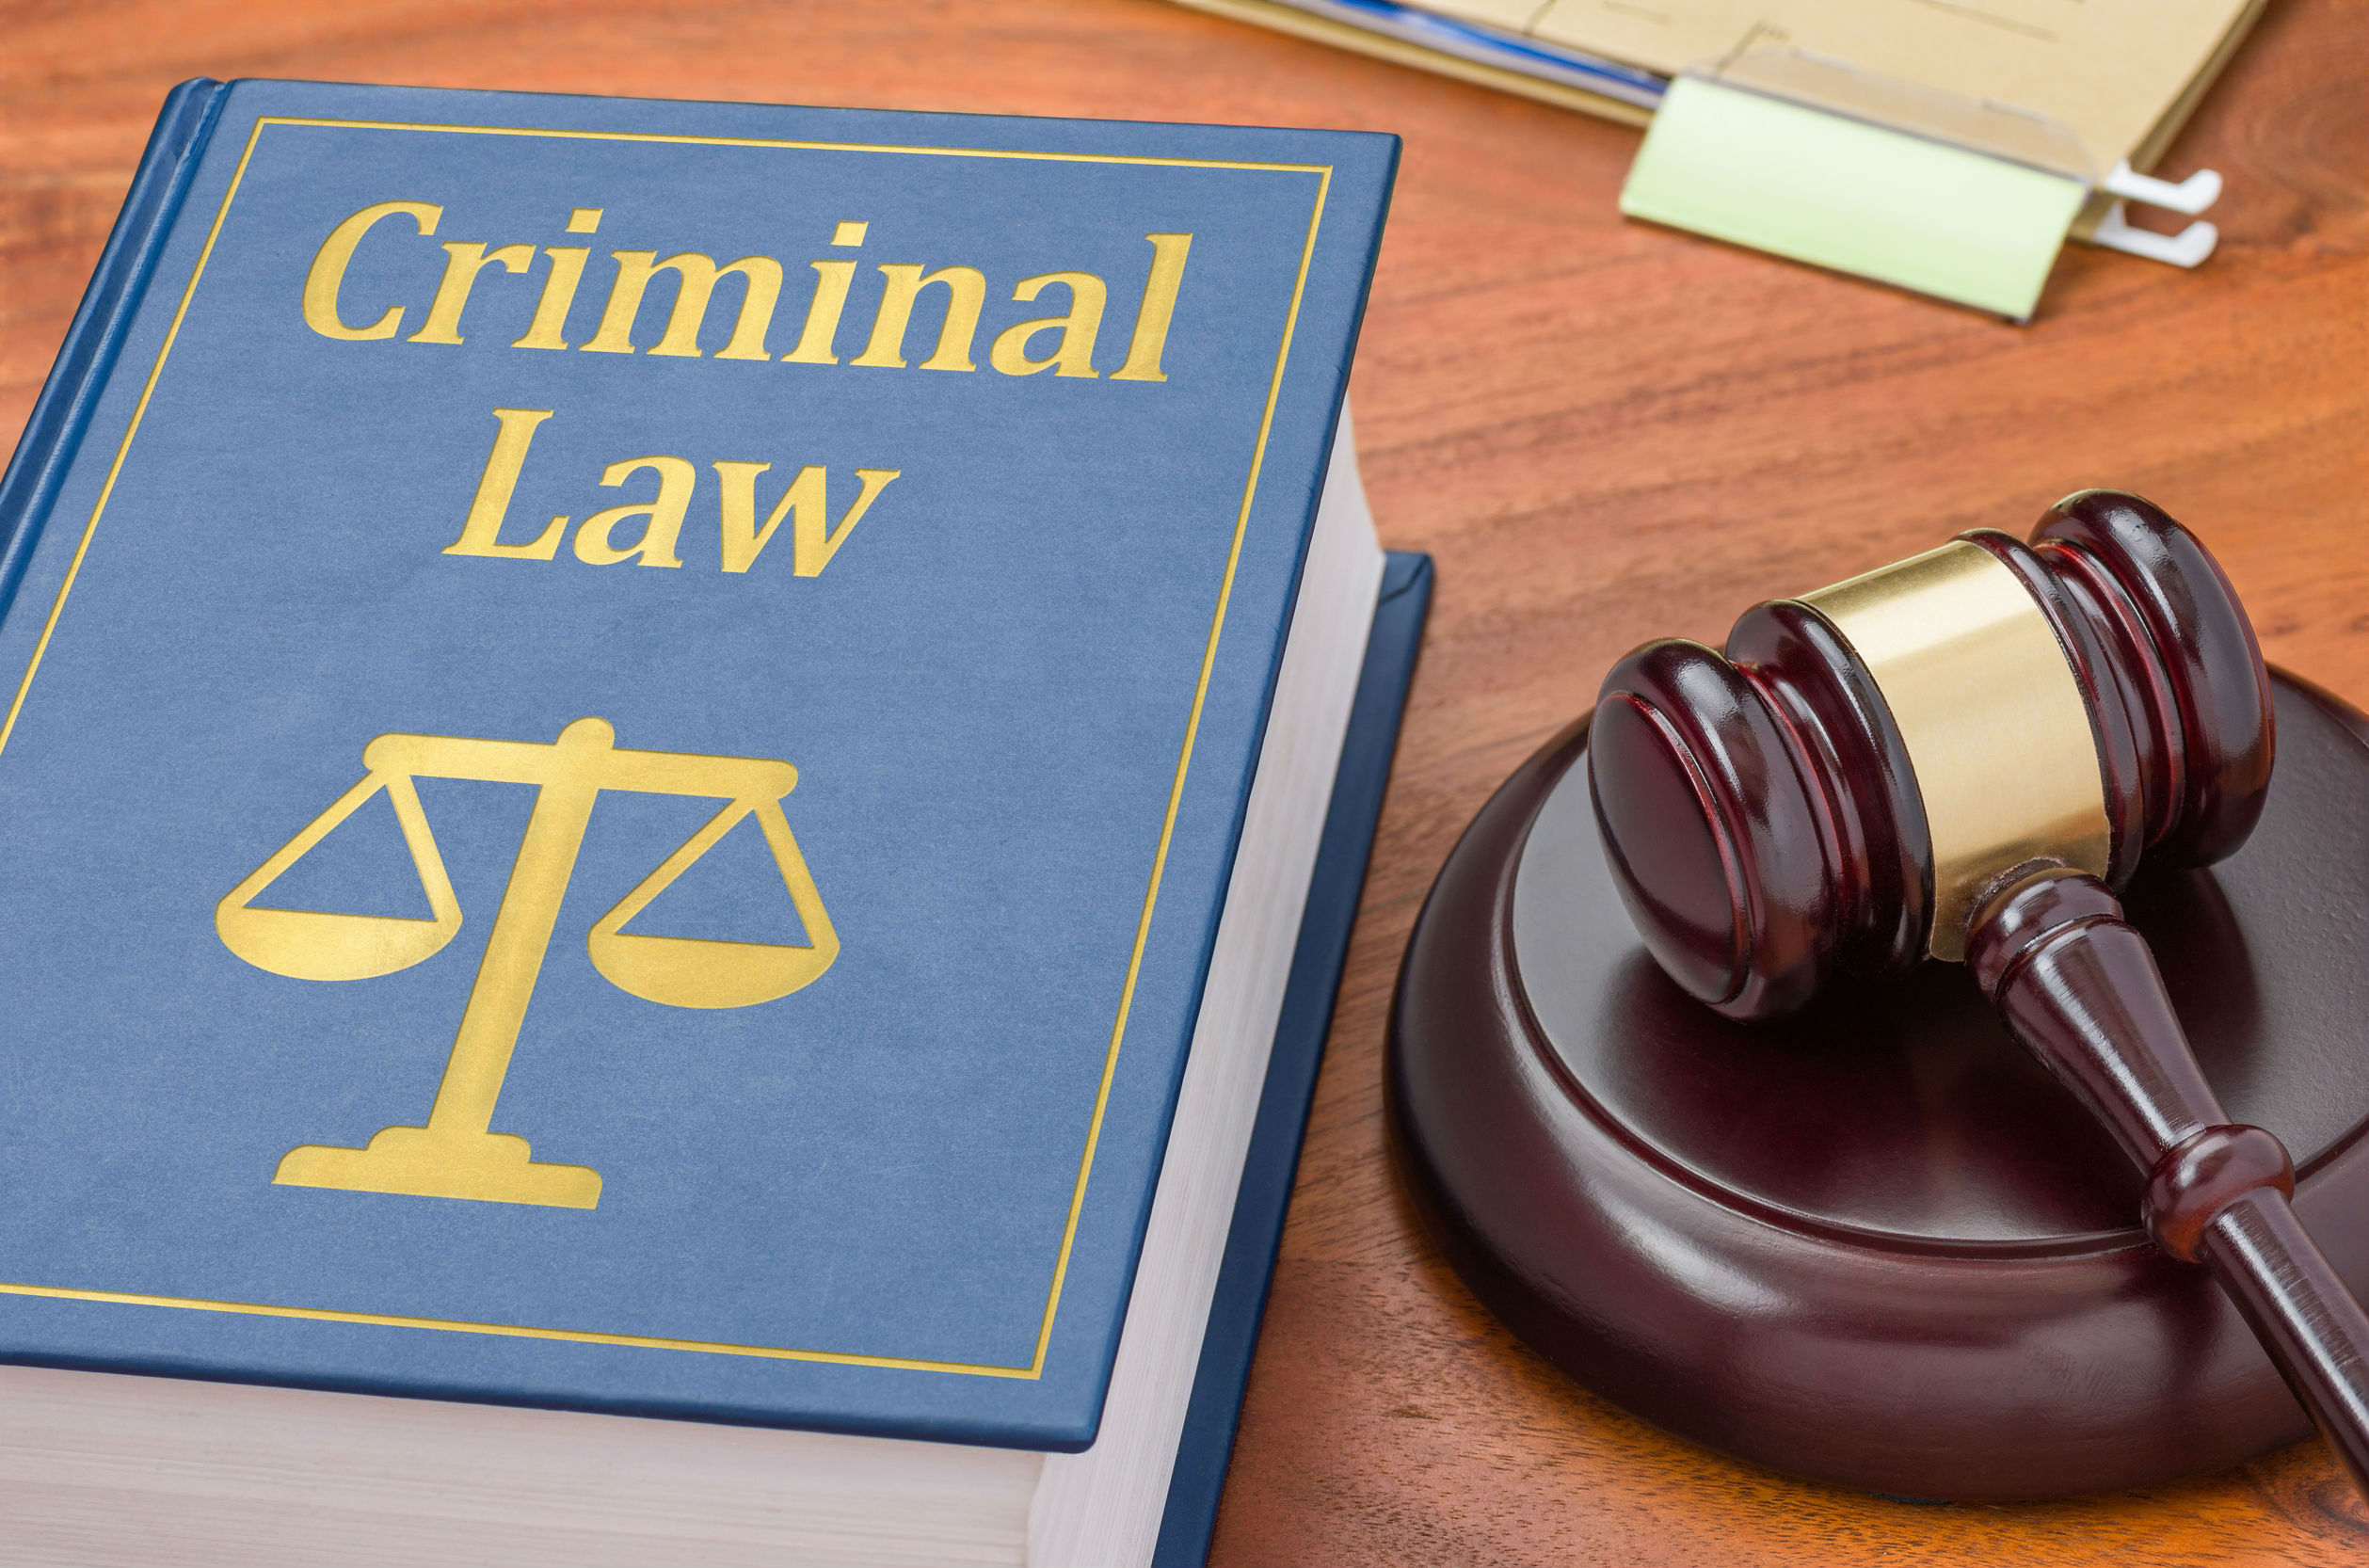 4 Signs That You Are Not Working With a Professional Expert Witness and Need to Switch